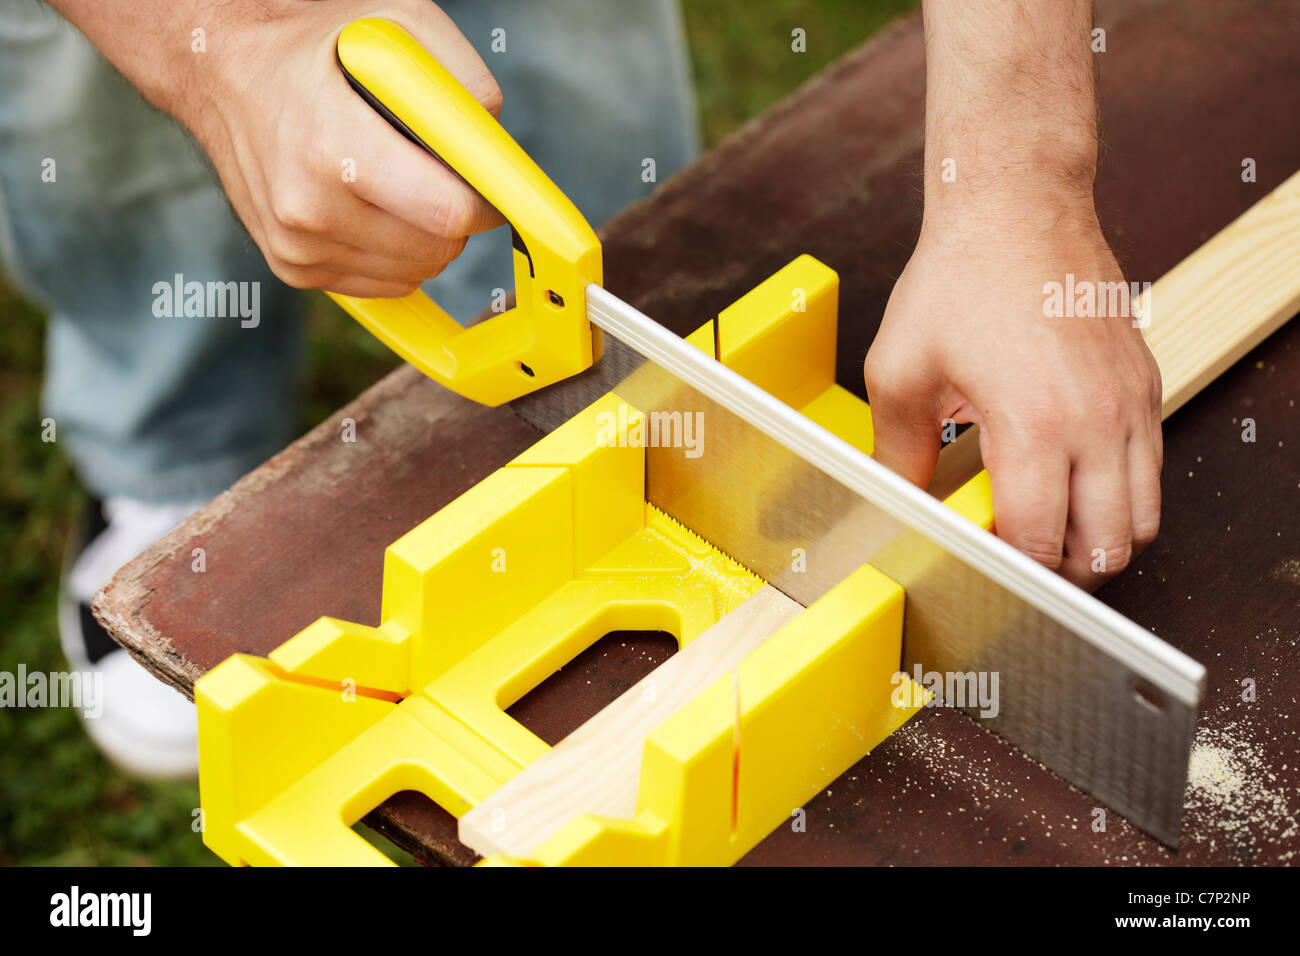 Man cutting a slat of wood using a saw and miter box outdoors. Stock Photo